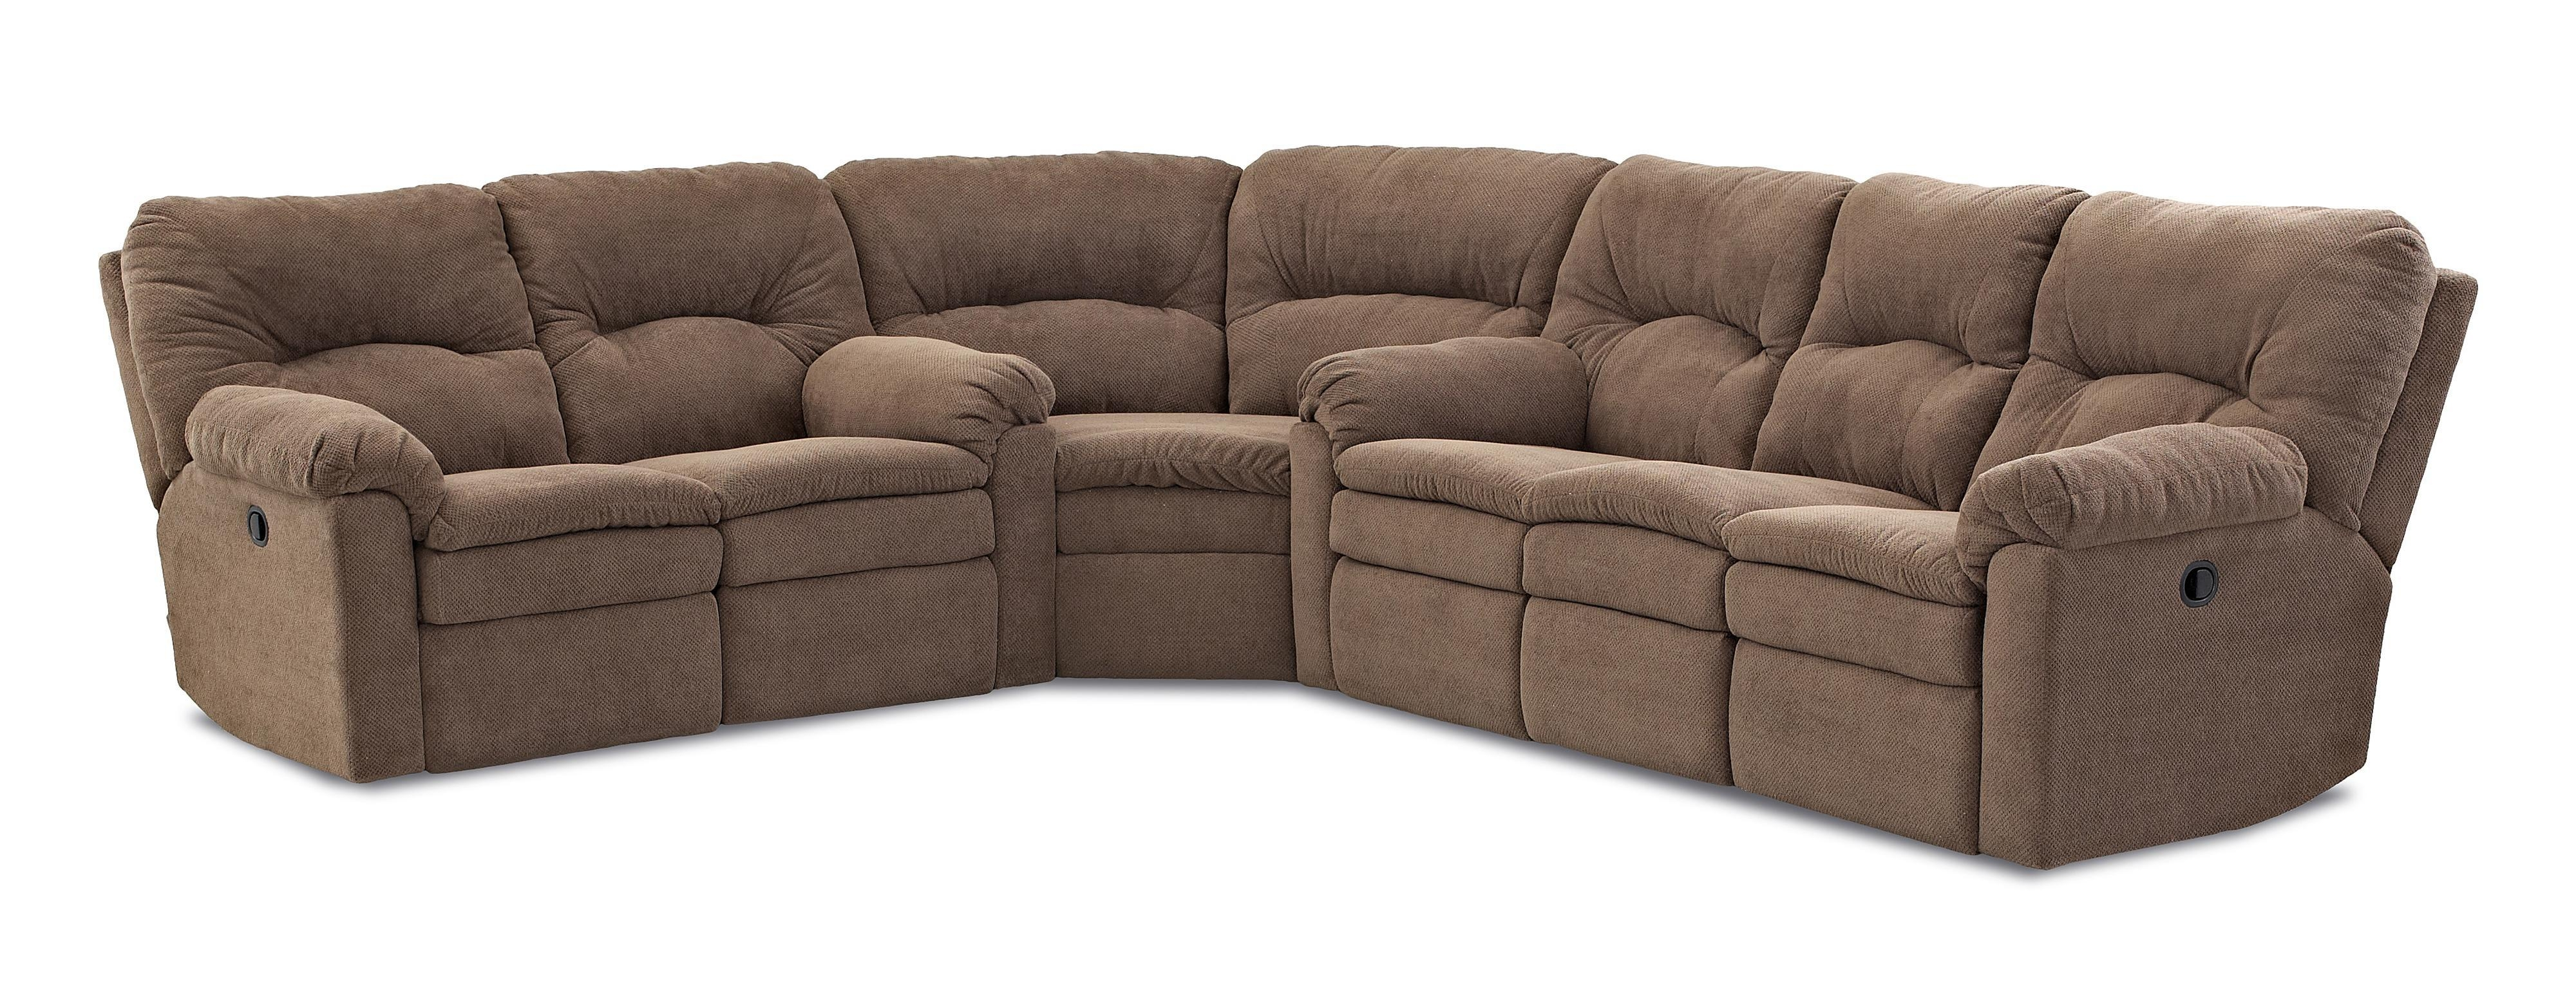 Klaussner Bennington Casual 3 Piece Power Reclining Sectional Sofa With Regard To Recliner Sectional Sofas (View 10 of 22)